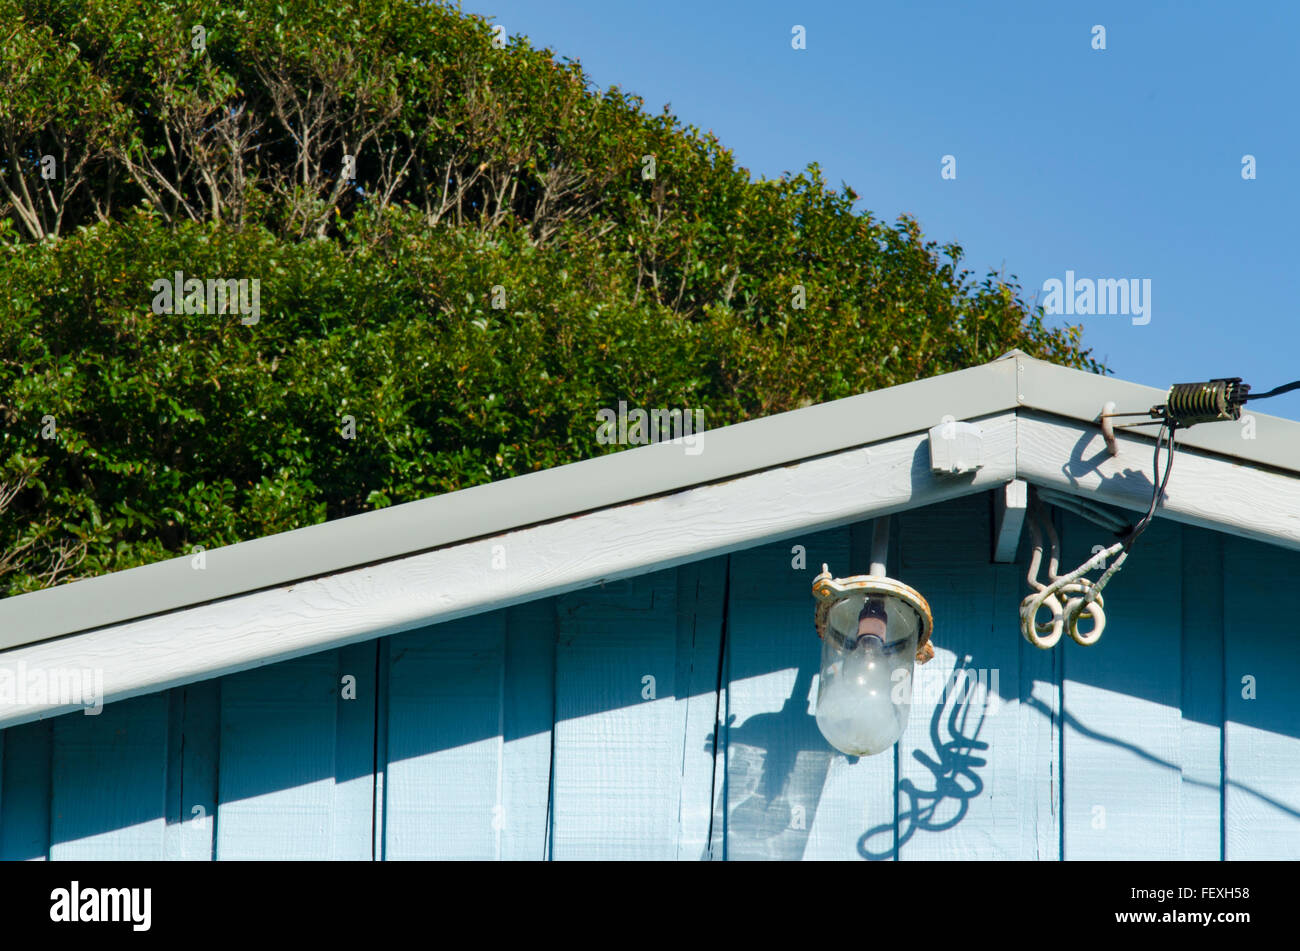 An old outdoor ketch yacht light on a blue timber building - Stock Image